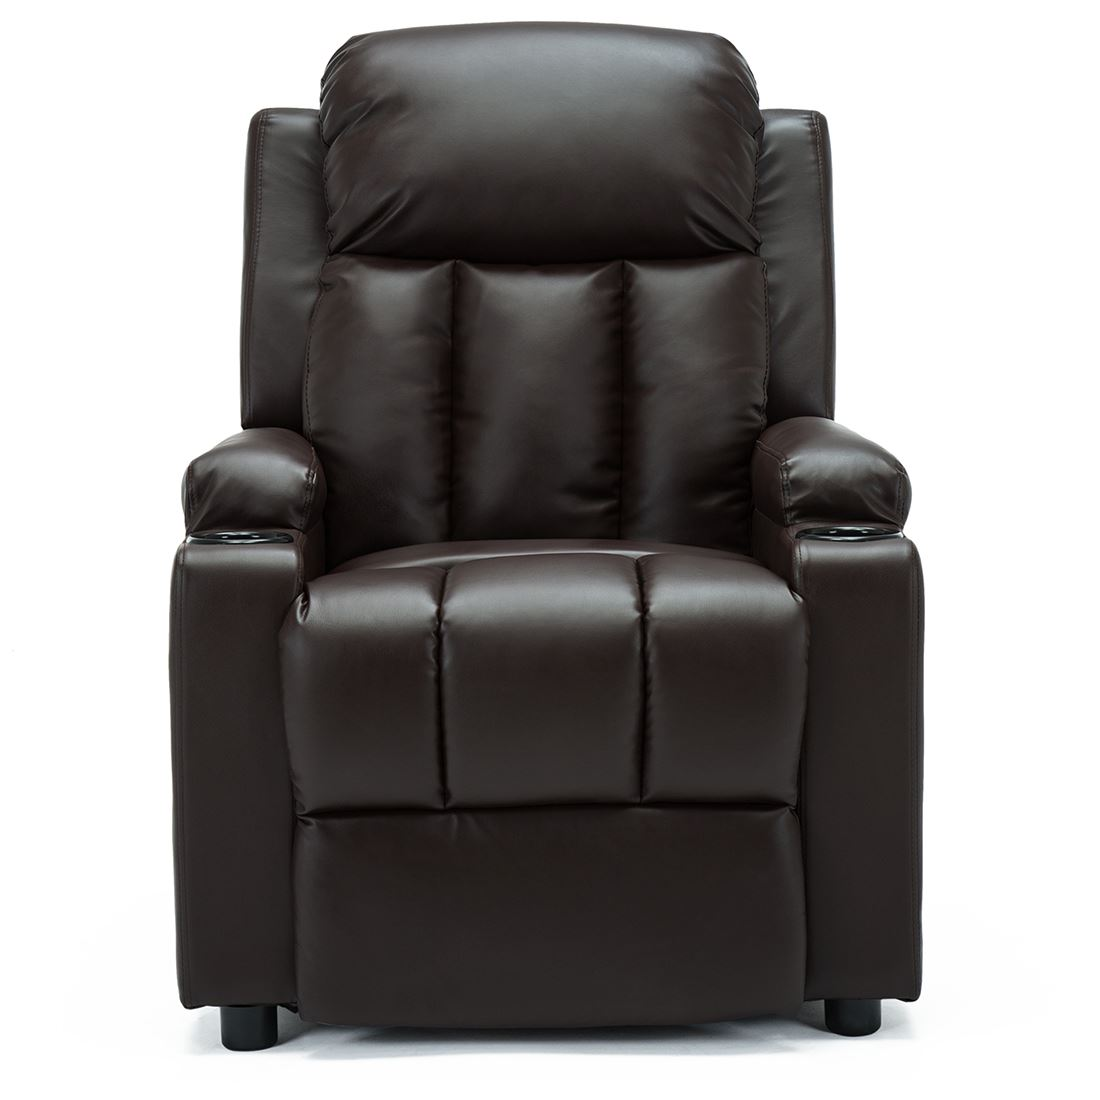 STUDIO-LEATHER-RECLINER-w-DRINK-HOLDERS-ARMCHAIR-SOFA-CHAIR-CINEMA-GAMING thumbnail 18